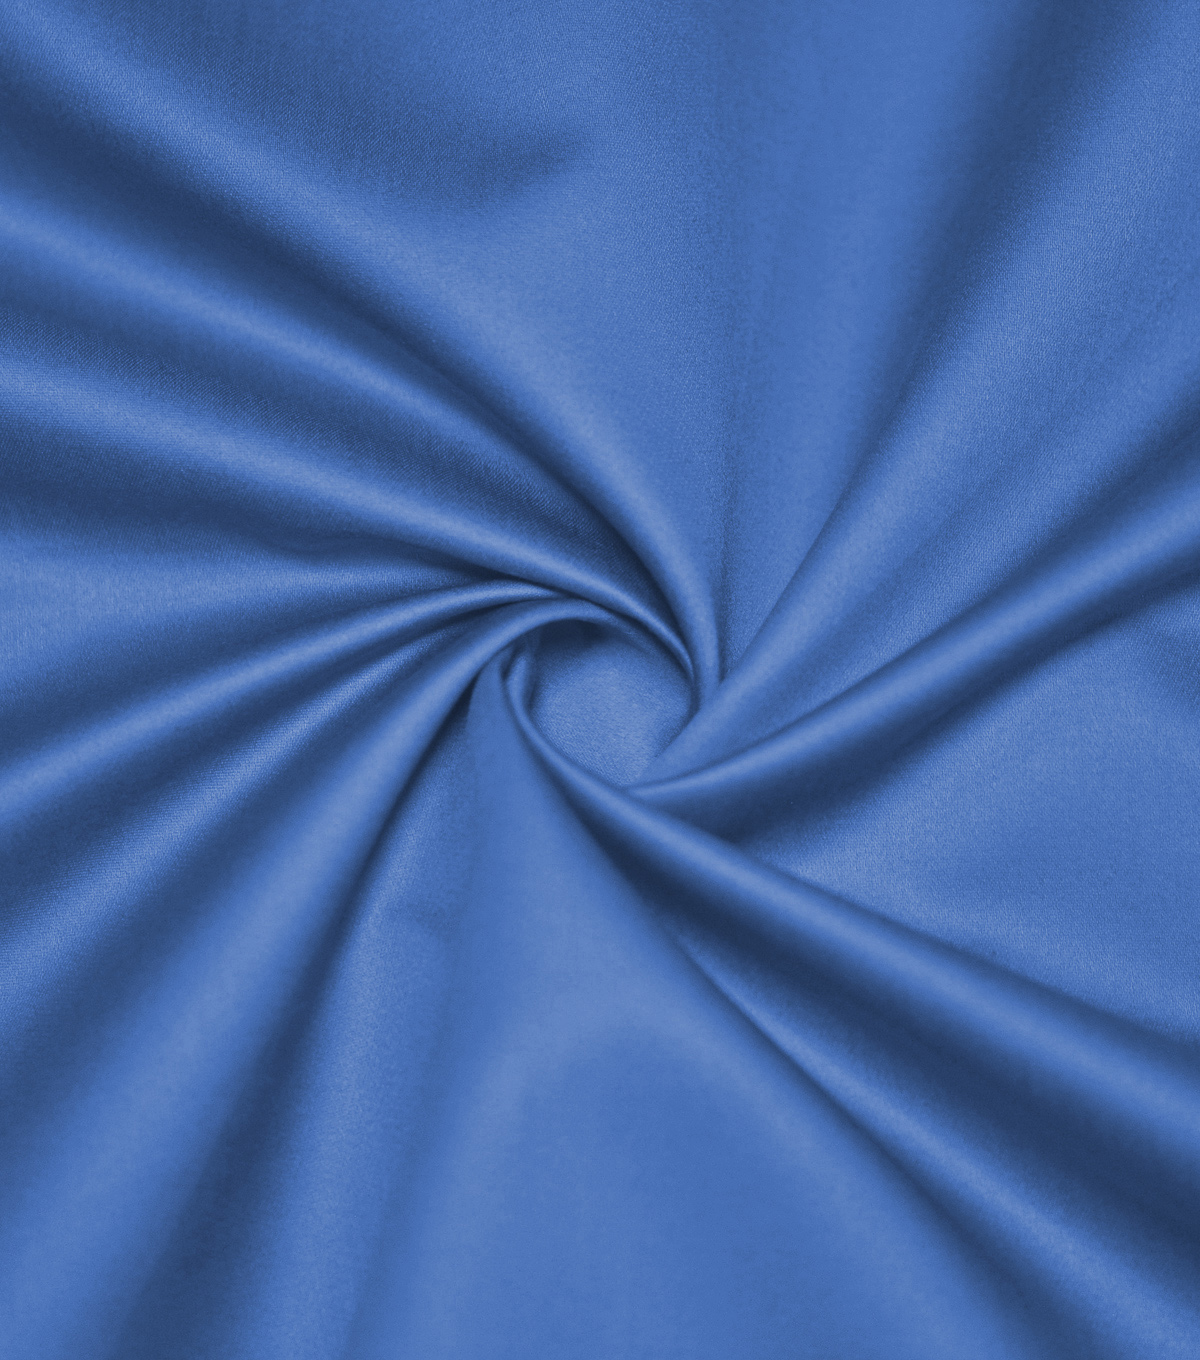 Supima Sateen Cotton Fabric-Solids, Blue